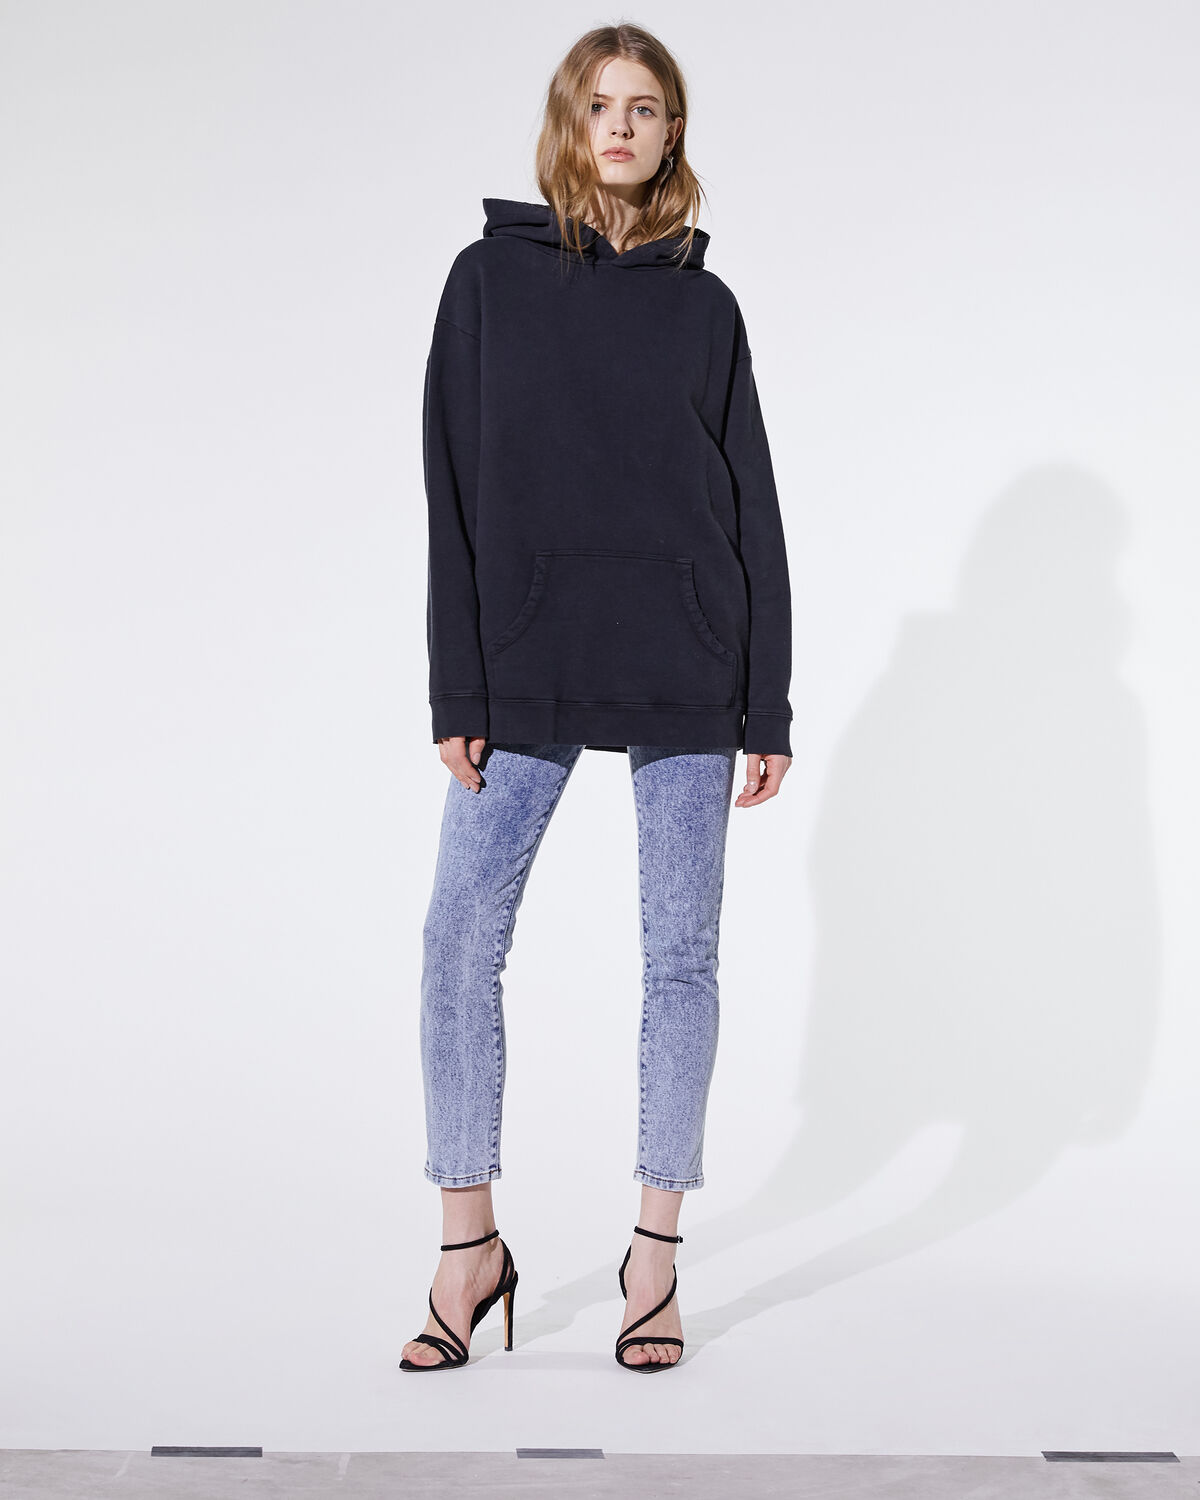 IRO - LUCKY SWEATSHIRT USED BLACK